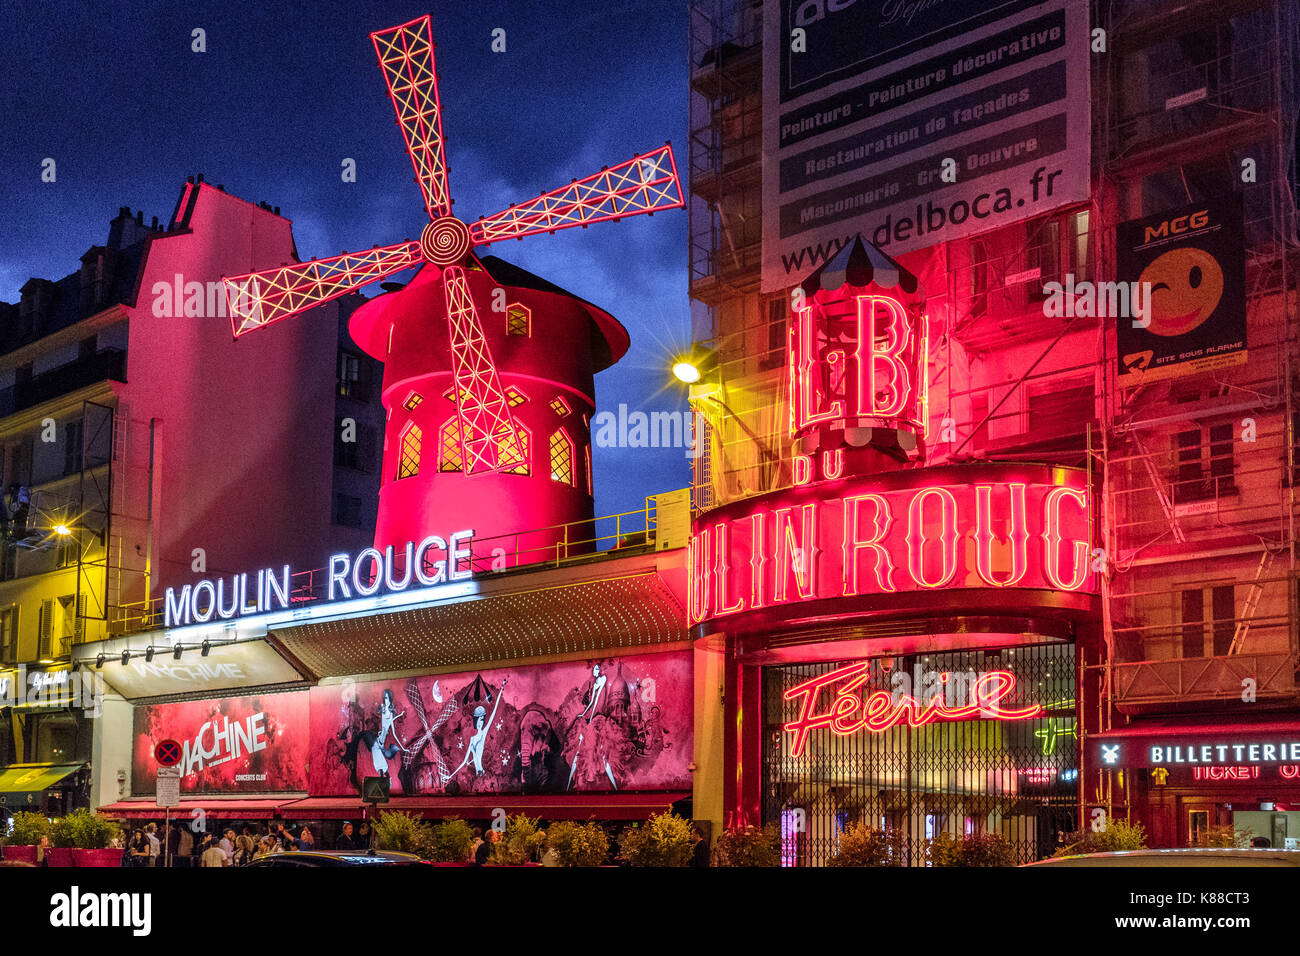 Moulin Rouge at night,Paris France - Stock Image